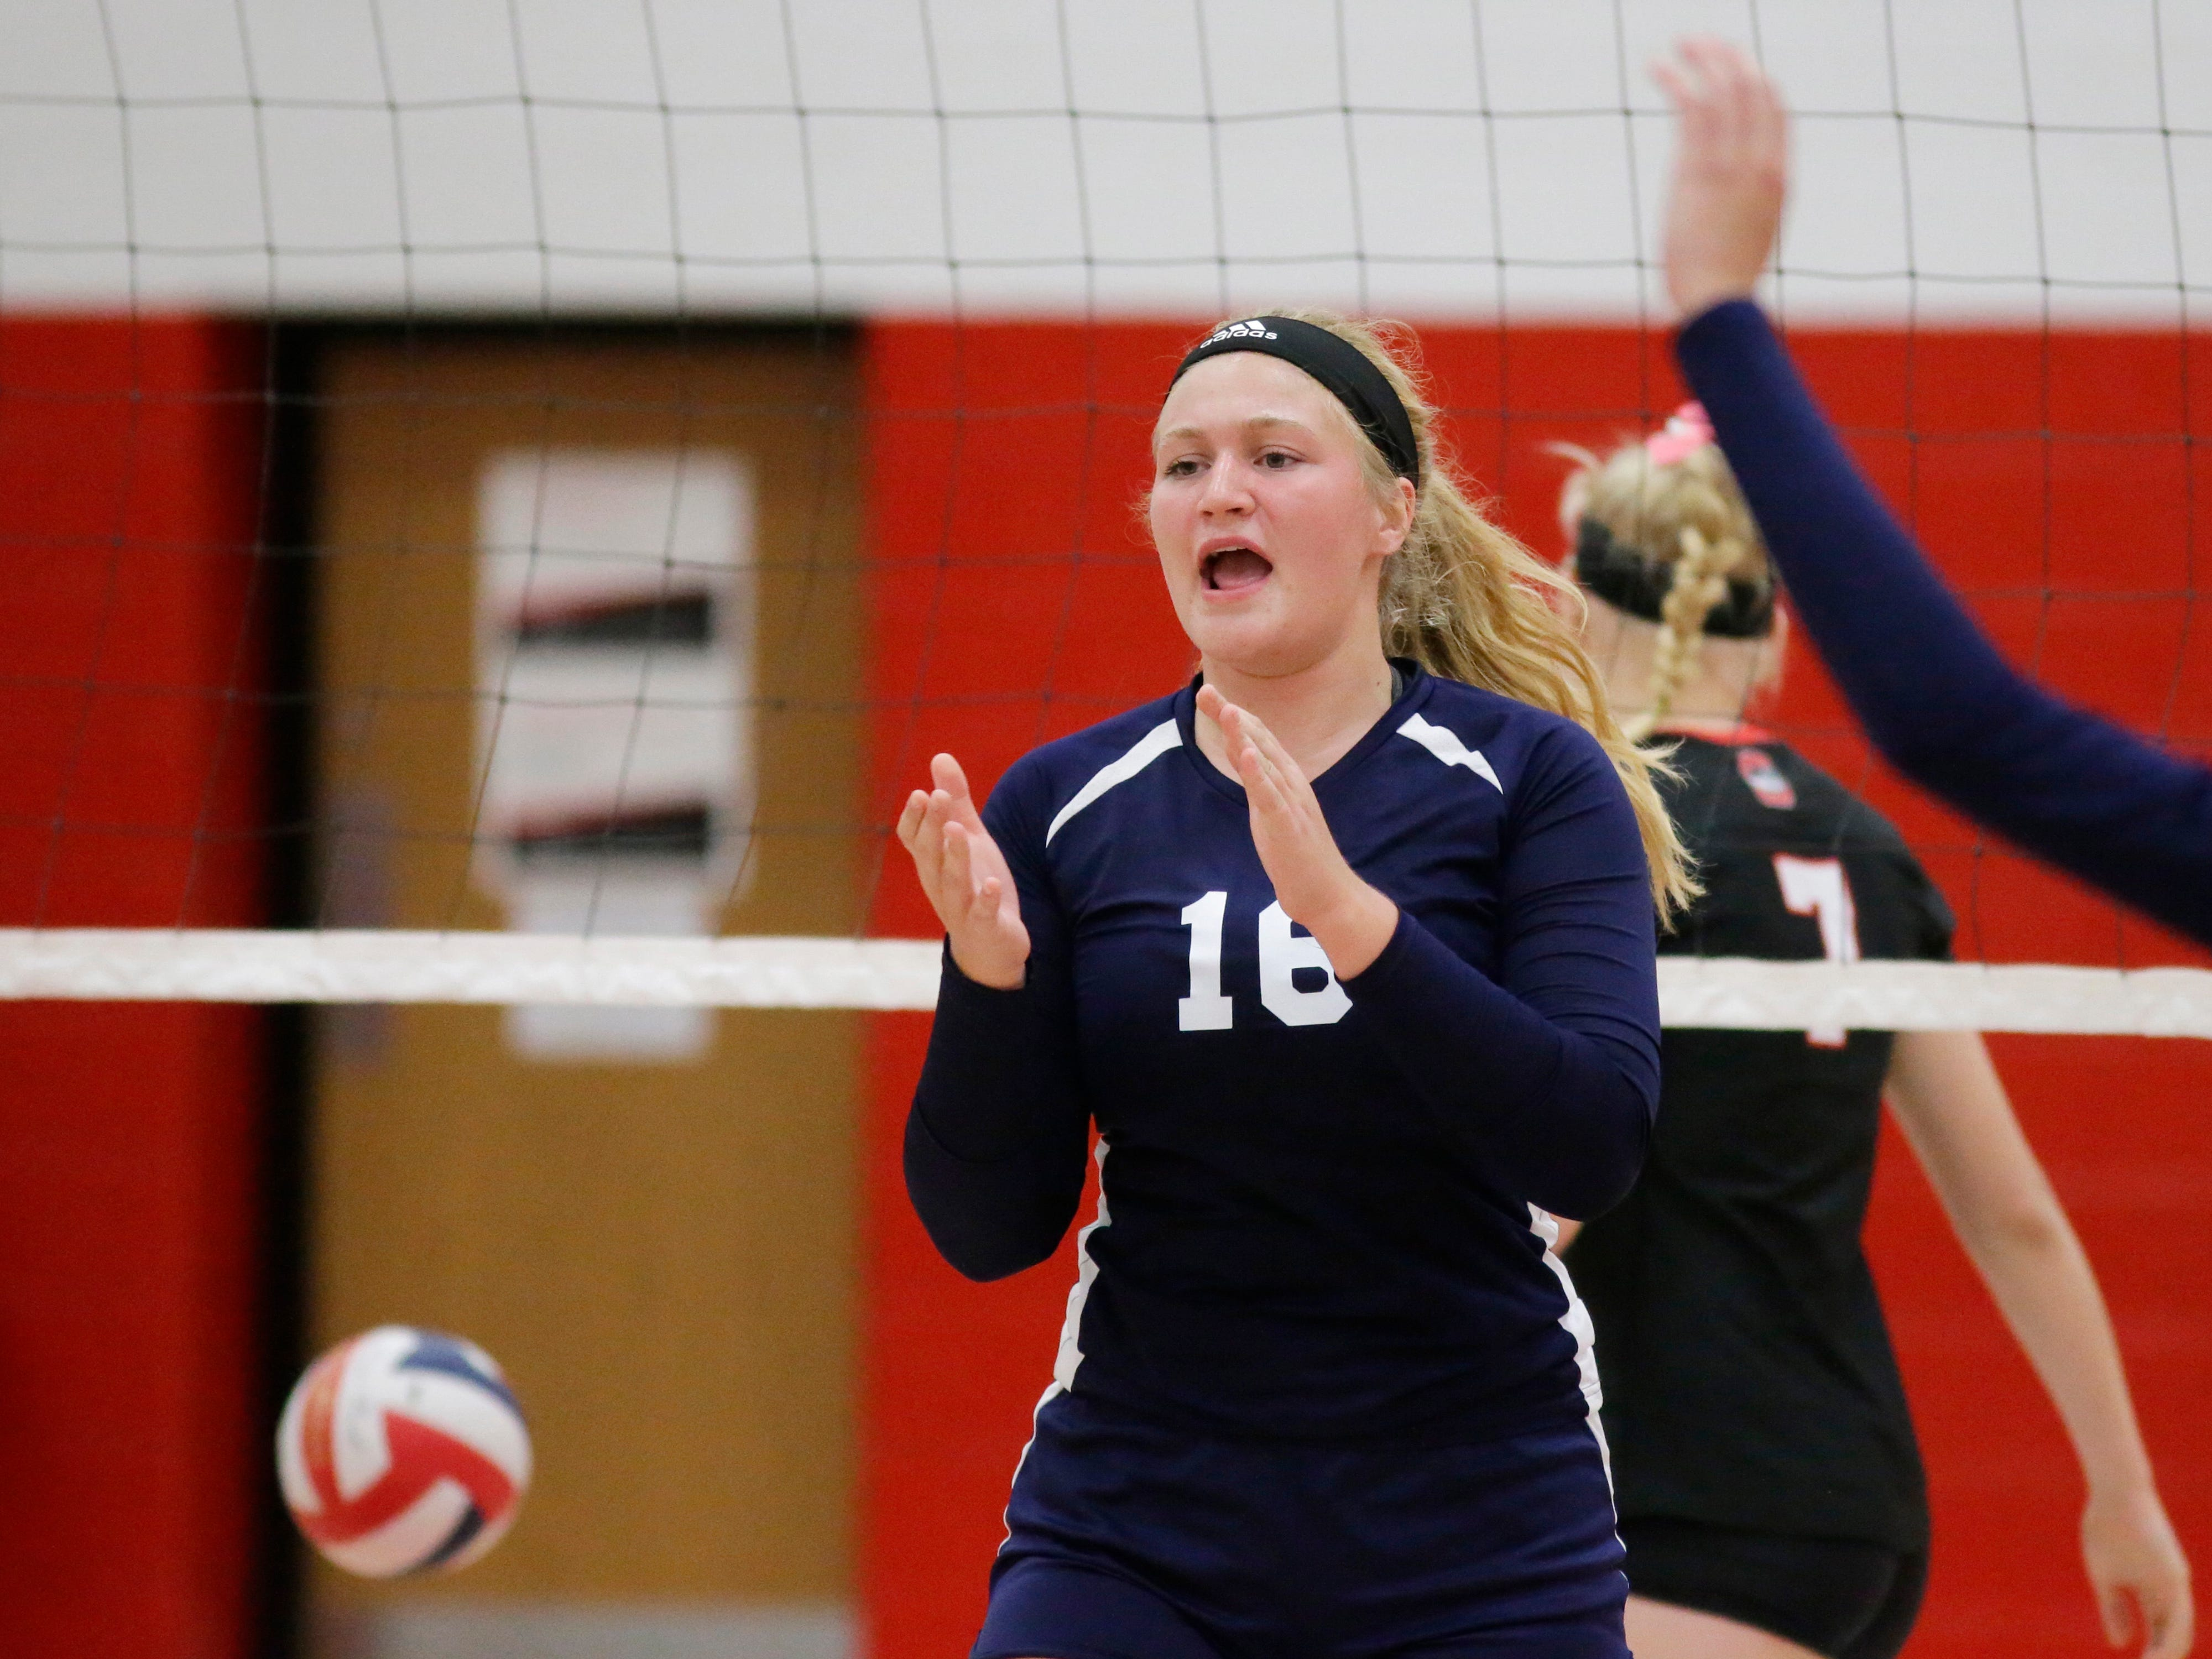 Sheboygan Christian's (10) reacts to a point against Oostburg, Thursday, September 13, 2018, in Oostburg, Wis.